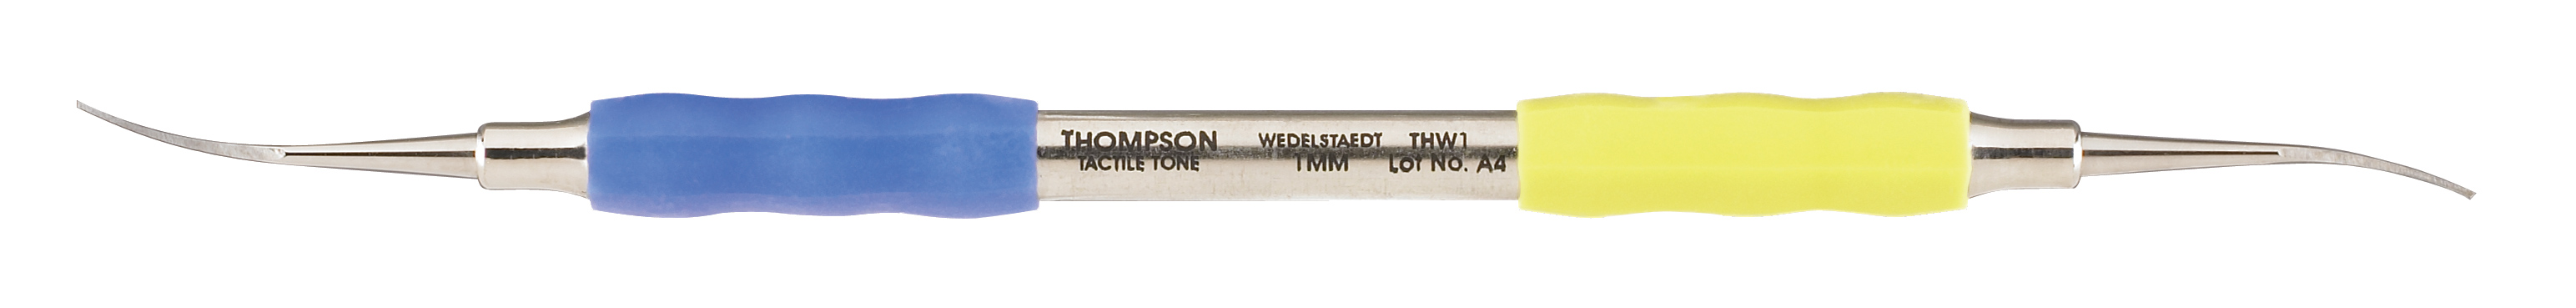 wedelstaedt-1mm-chisel-tactile-tone-double-end-thw1-miltex.jpg